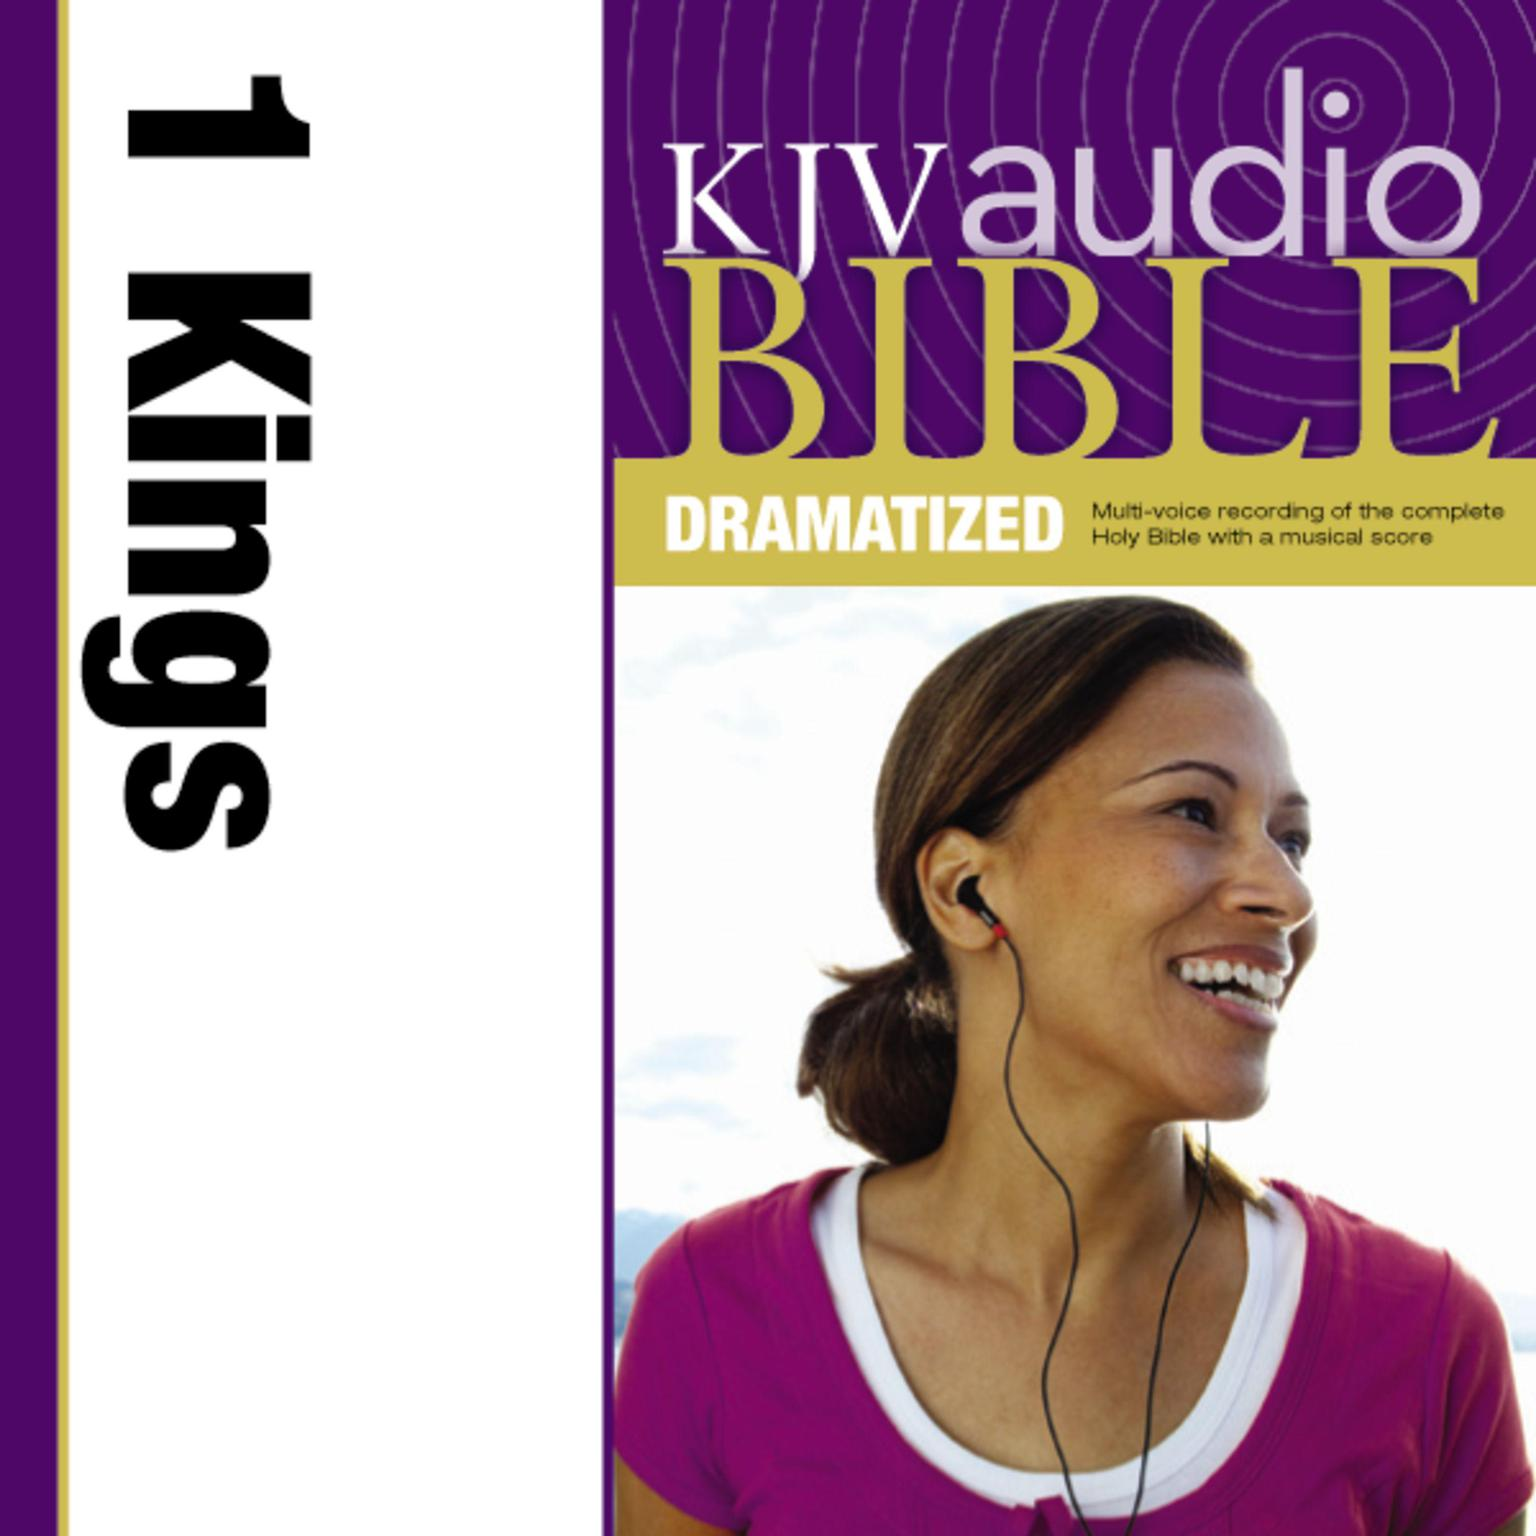 Printable KJV, Audio Bible, Dramatized: 1 Kings, Audio Download Audiobook Cover Art